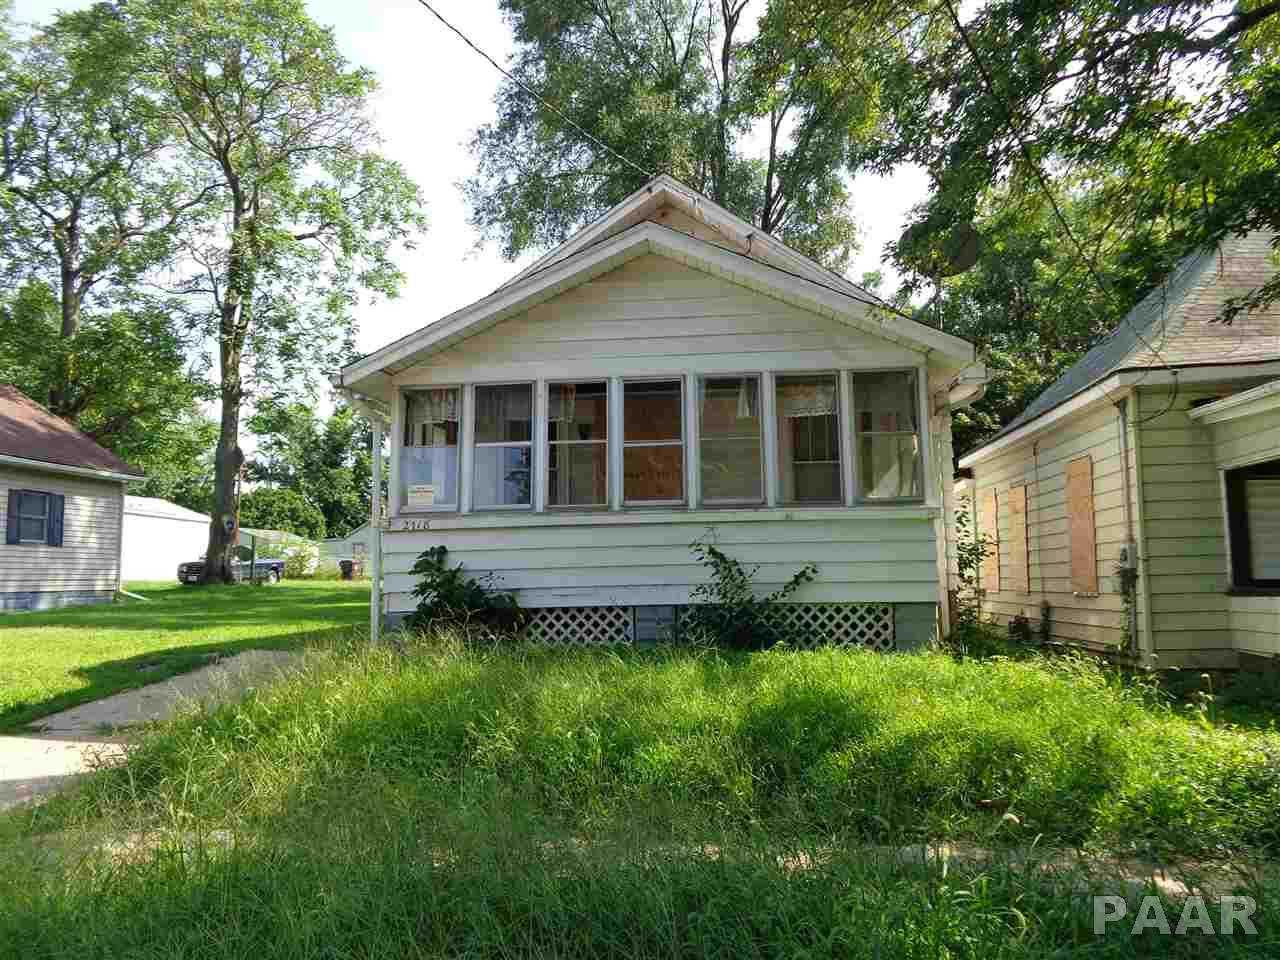 $10,000 - 3Br/1Ba -  for Sale in Darst Place, Peoria